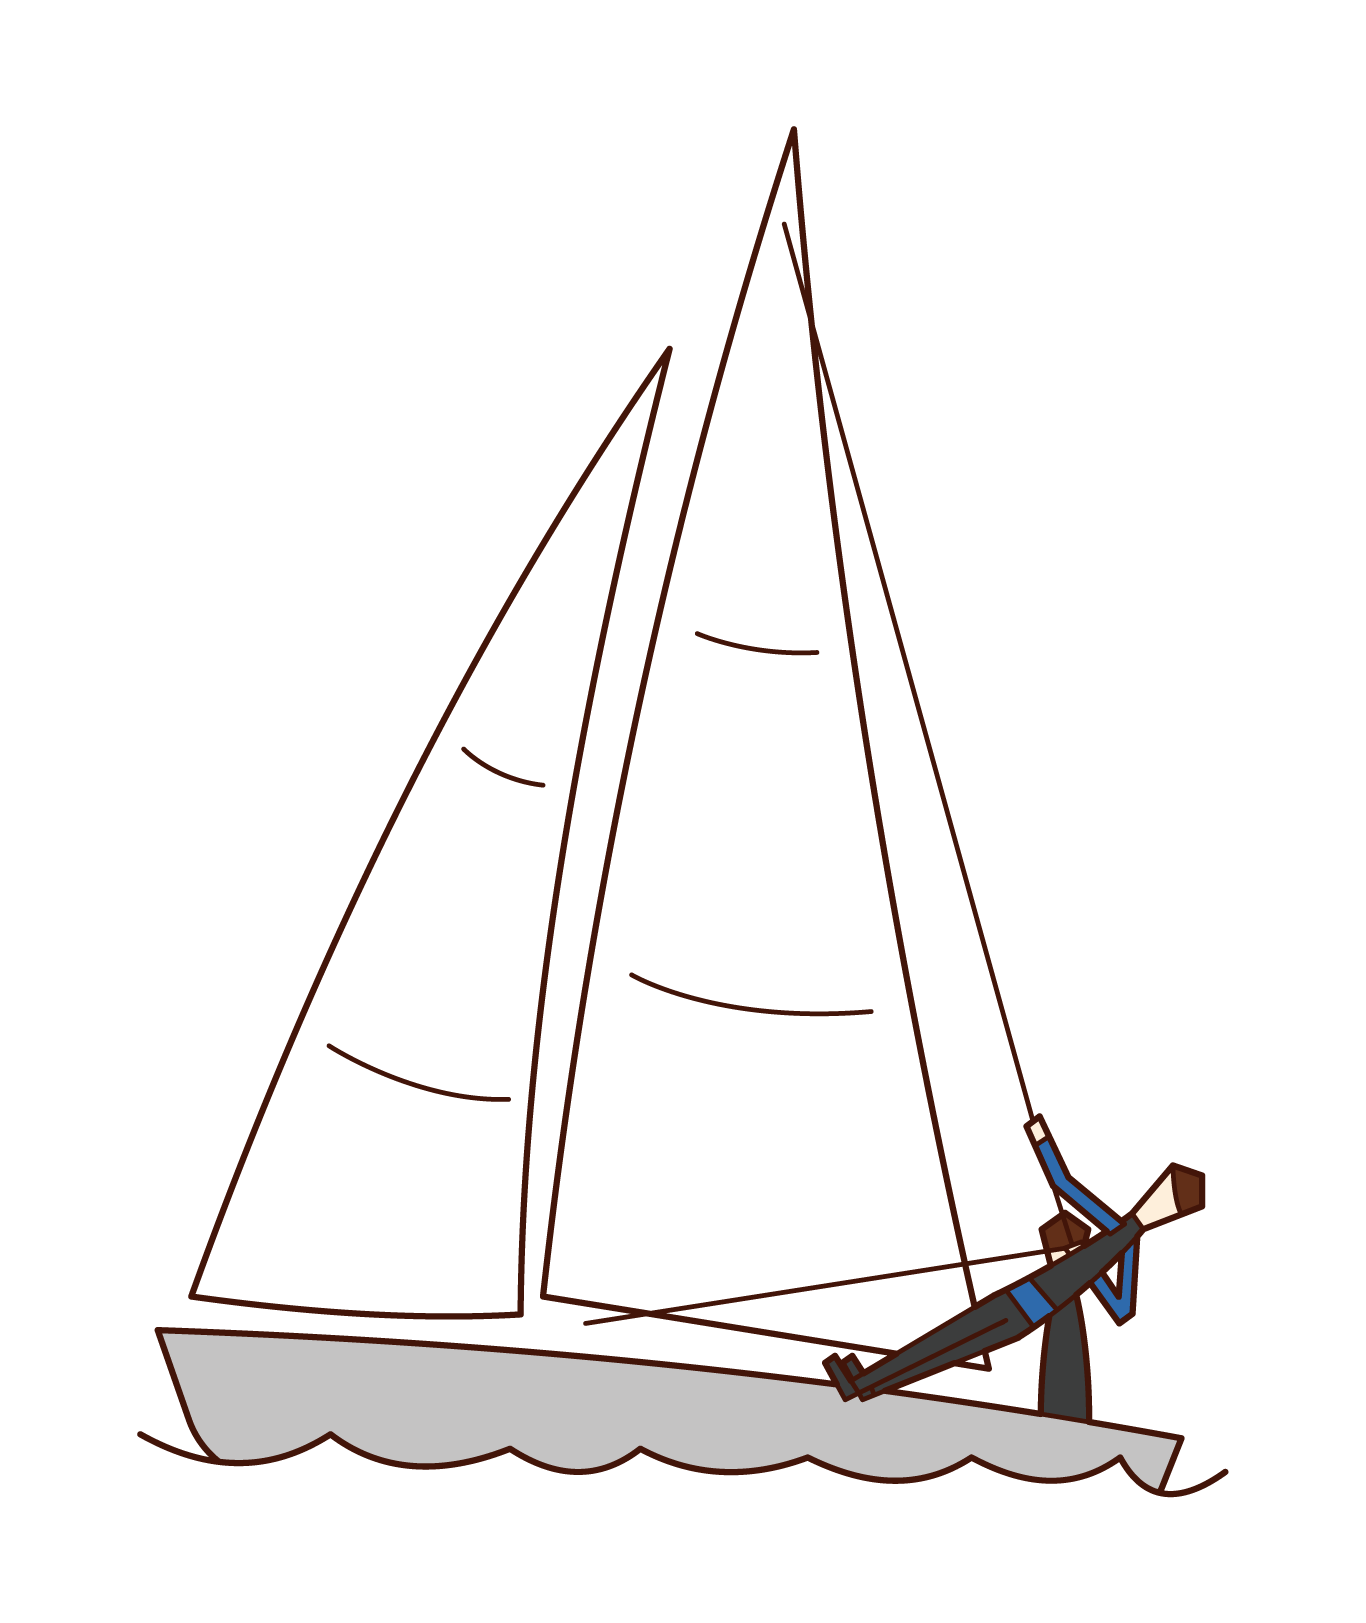 Illustration of sailing players